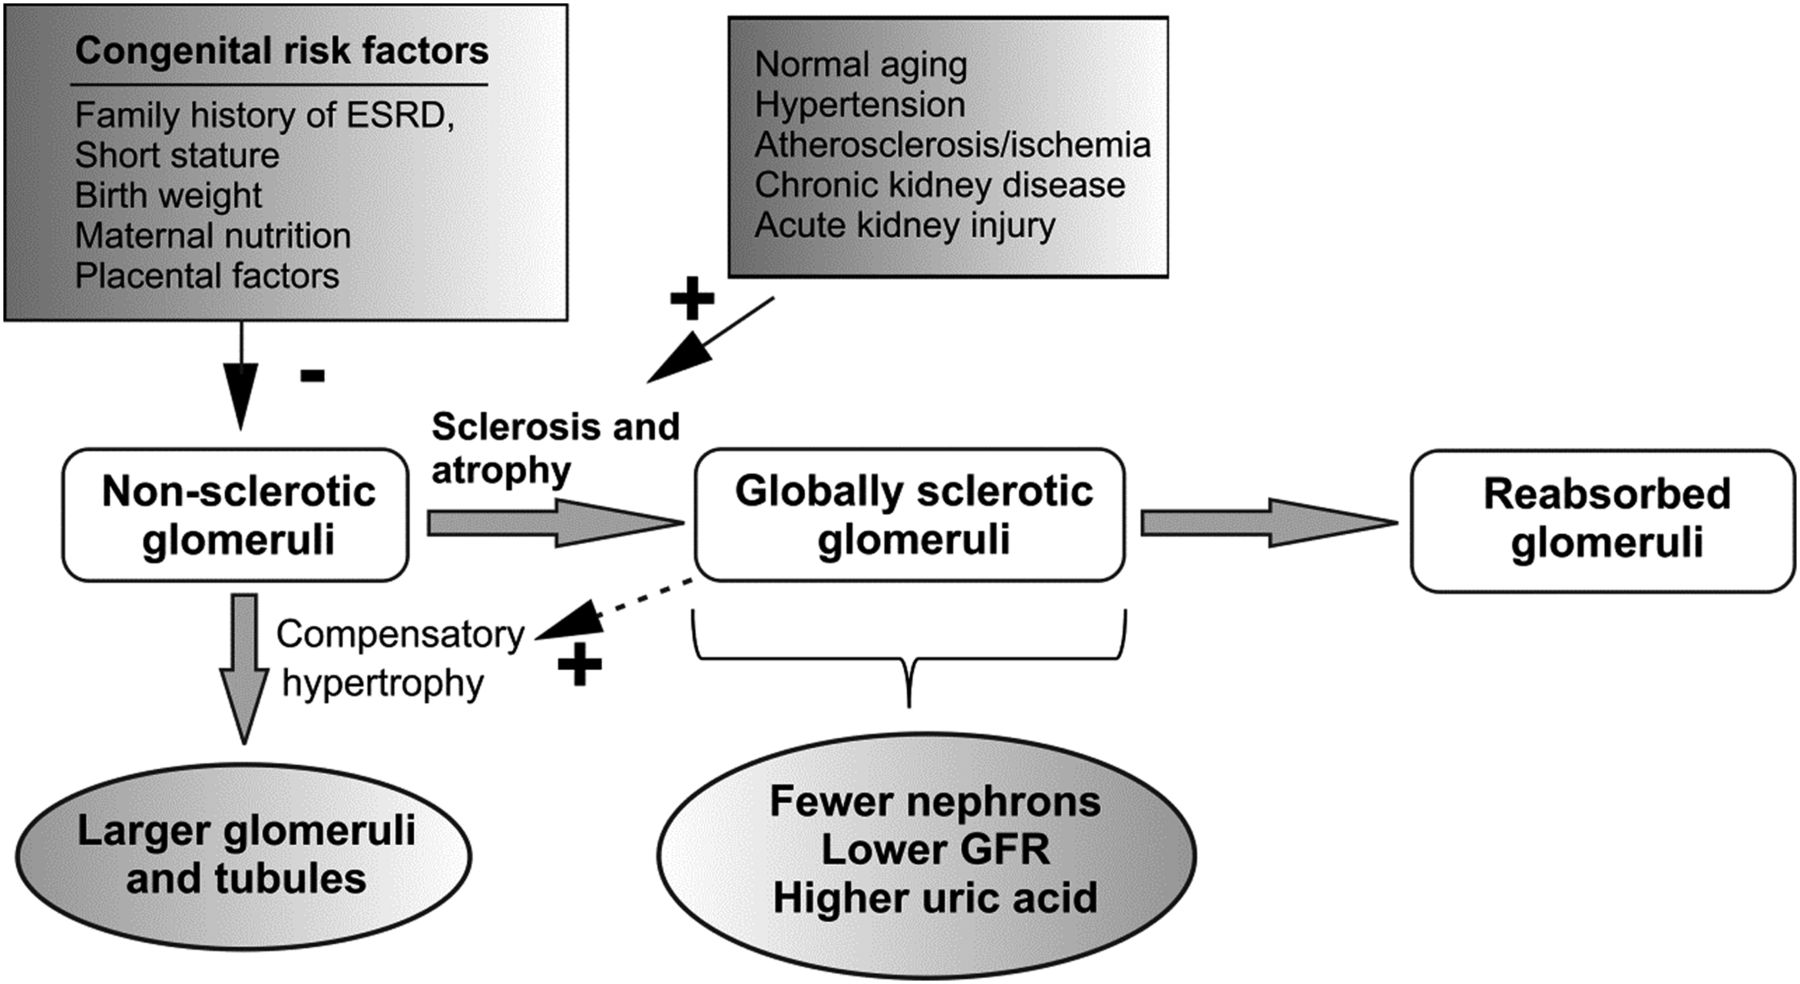 The Substantial Loss of Nephrons in Healthy Human Kidneys